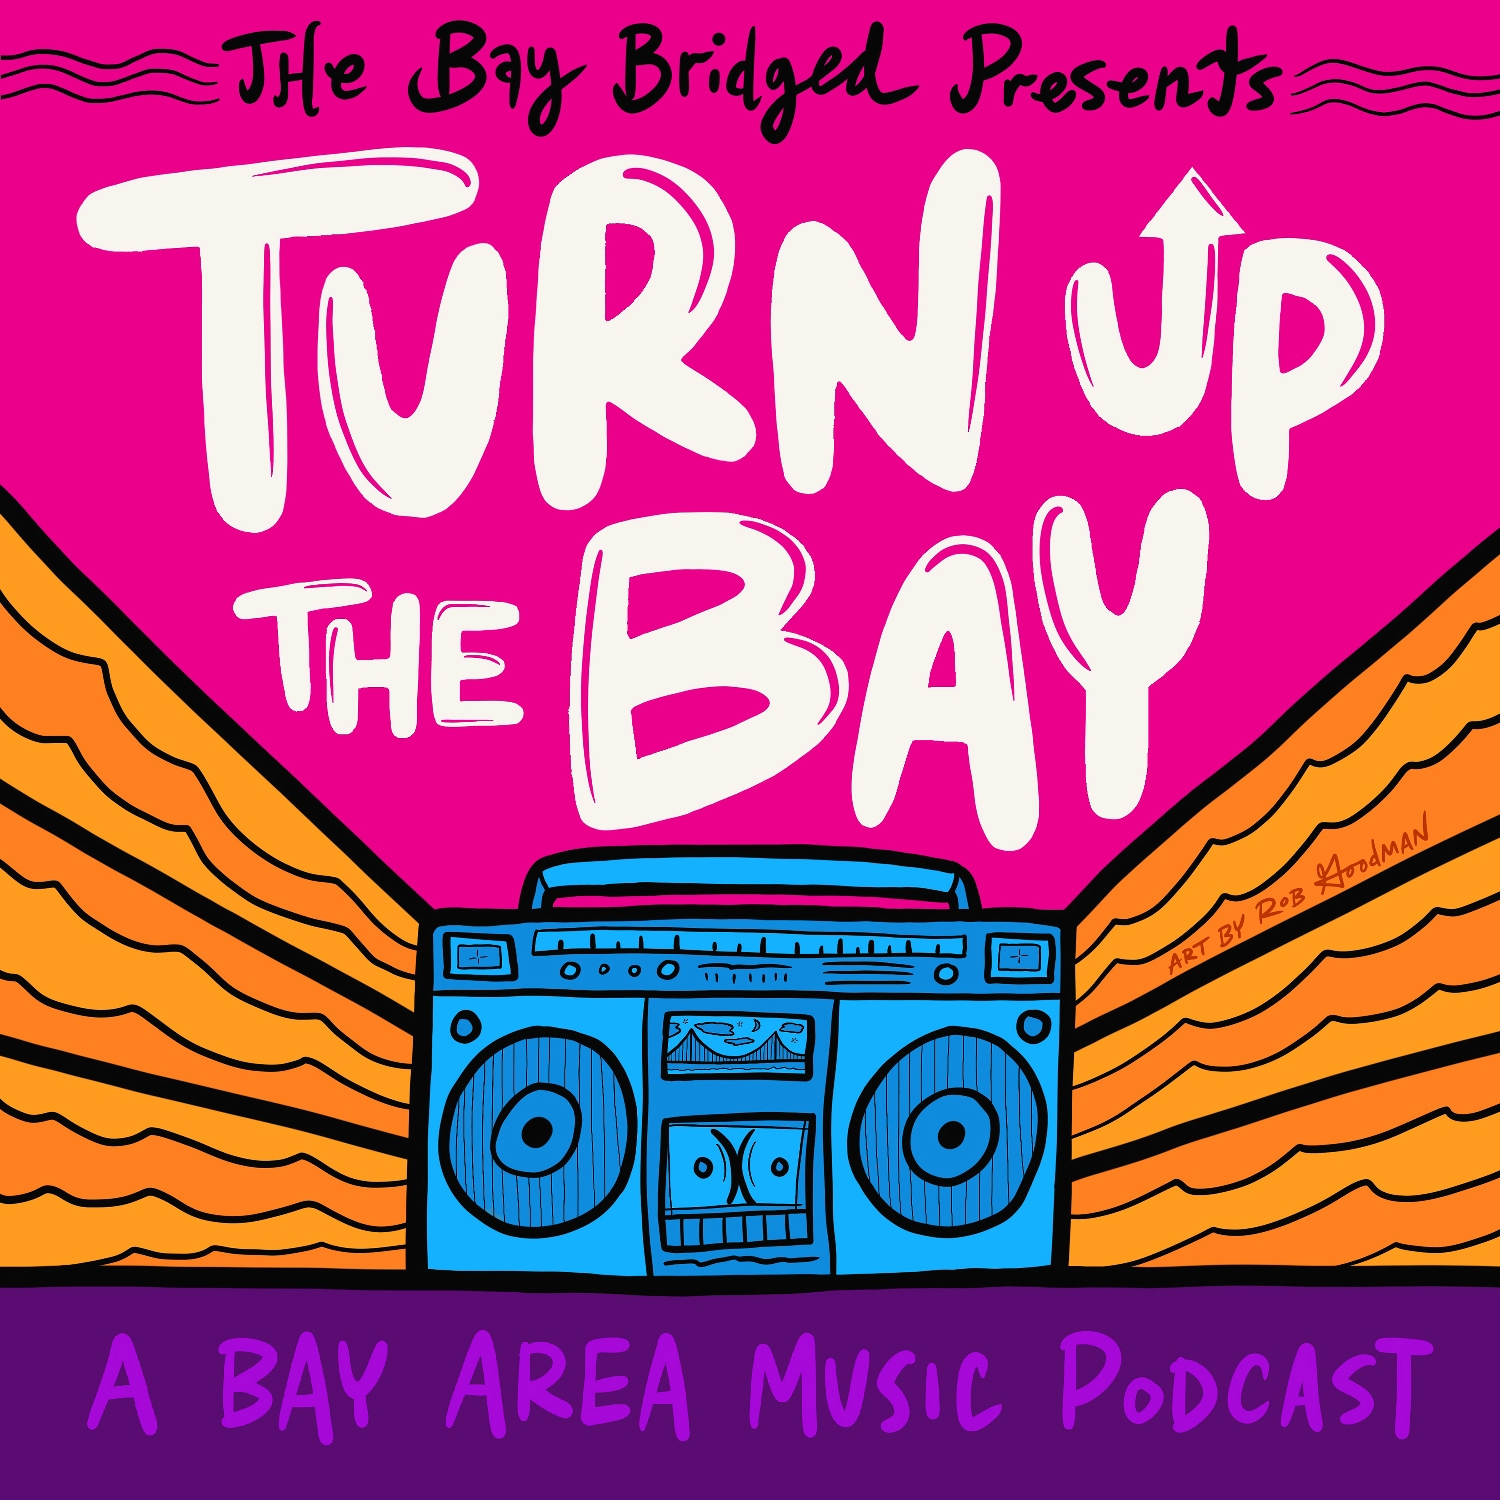 Turn Up The Bay - Art by Rob Goodman